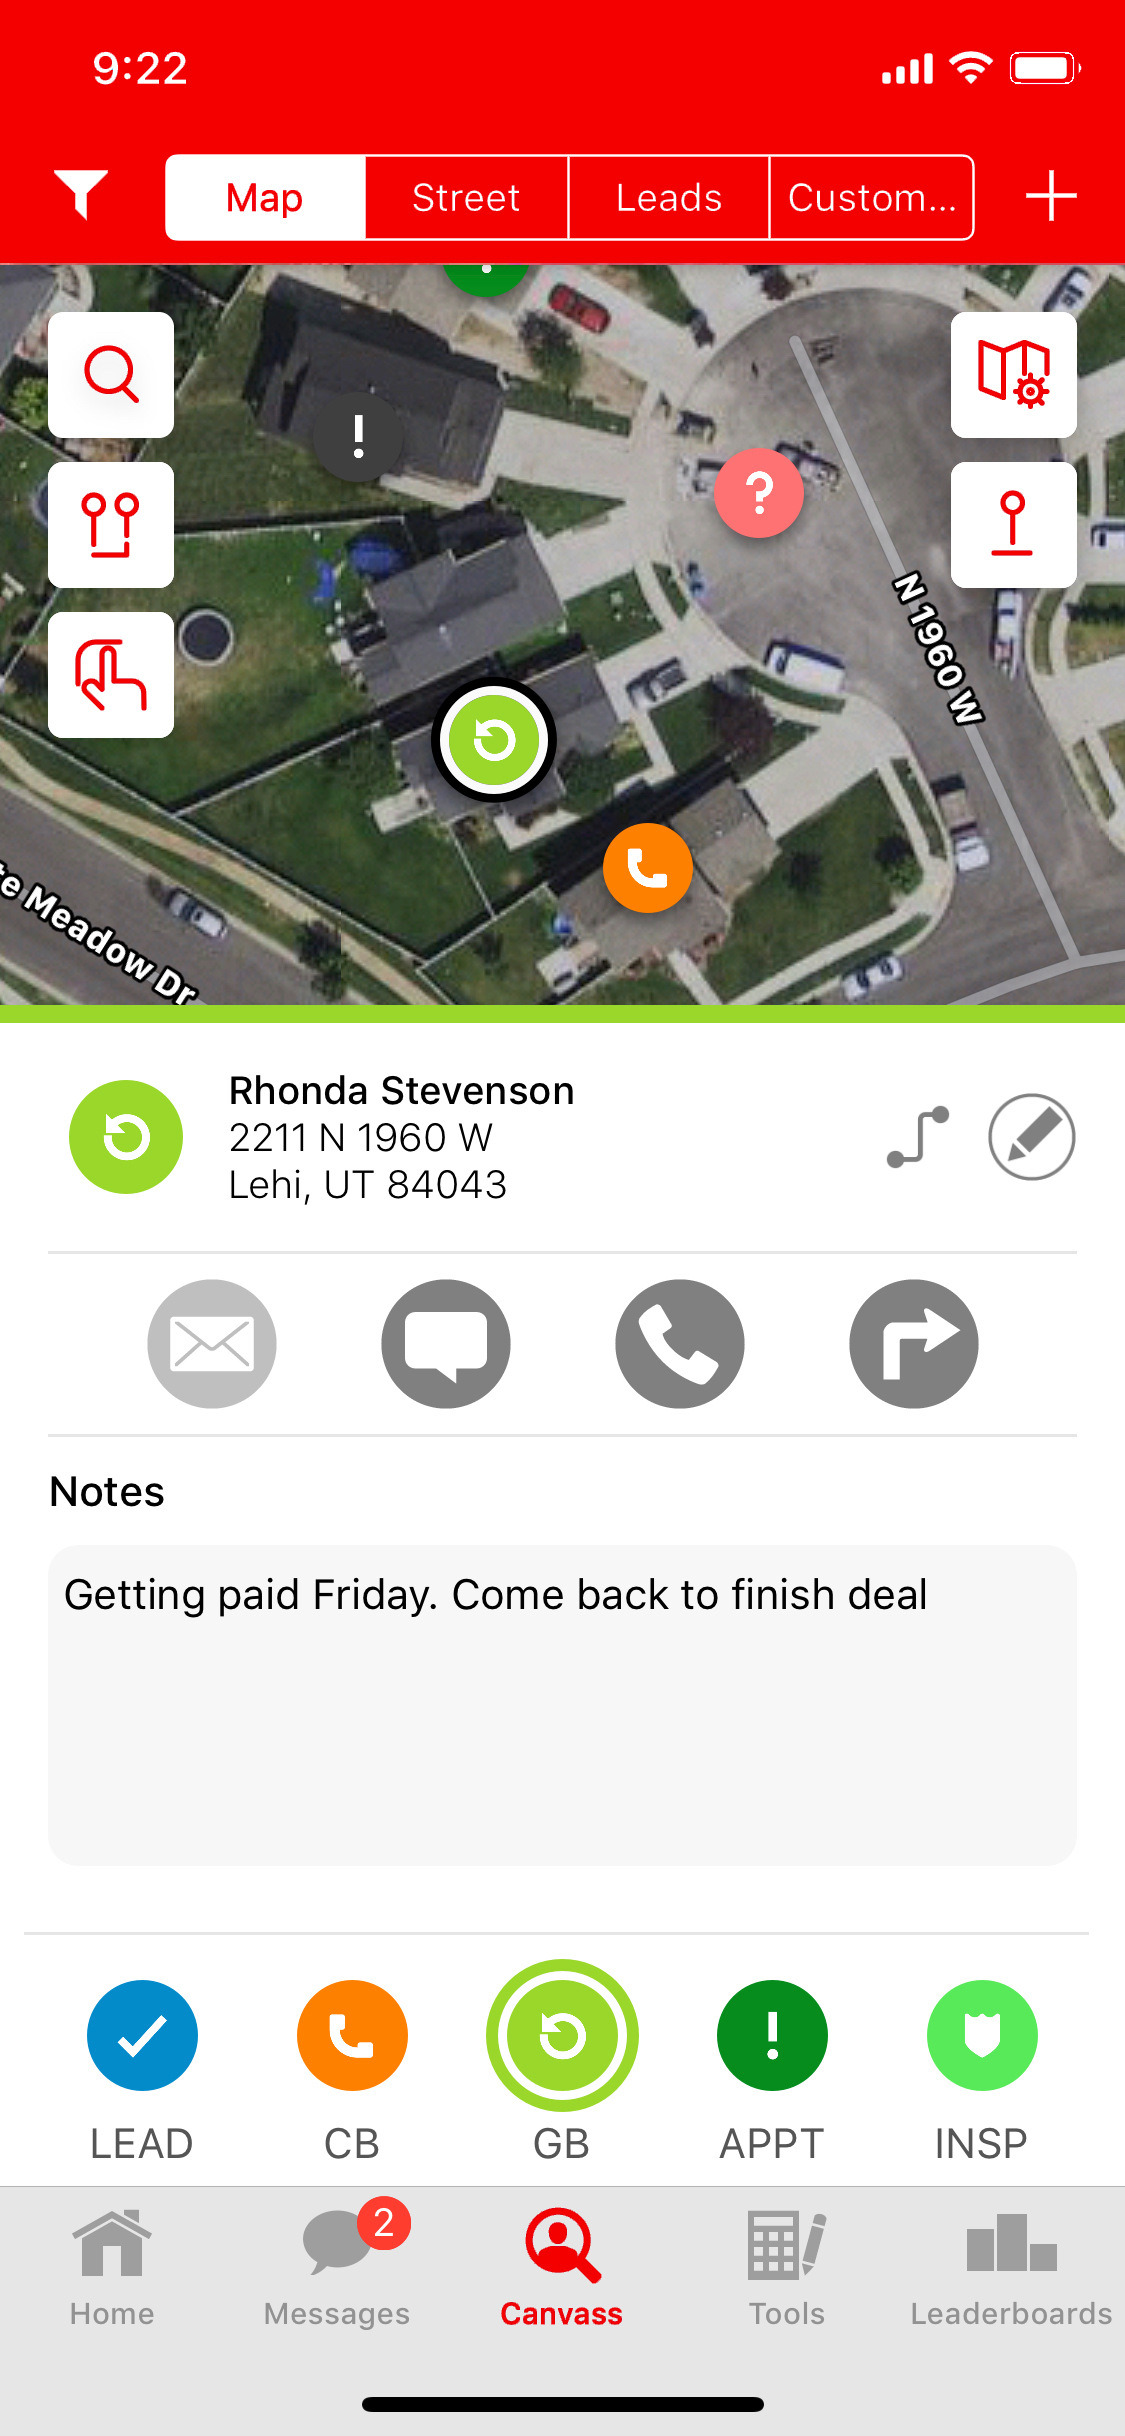 SalesRabbit screenshot: Capture a lead's information (name, phone number, email, address, etc). Rank each lead based on their level of interest. Drop pins on houses/businesses to track lead status. Call, text, or email leads directly from the app.